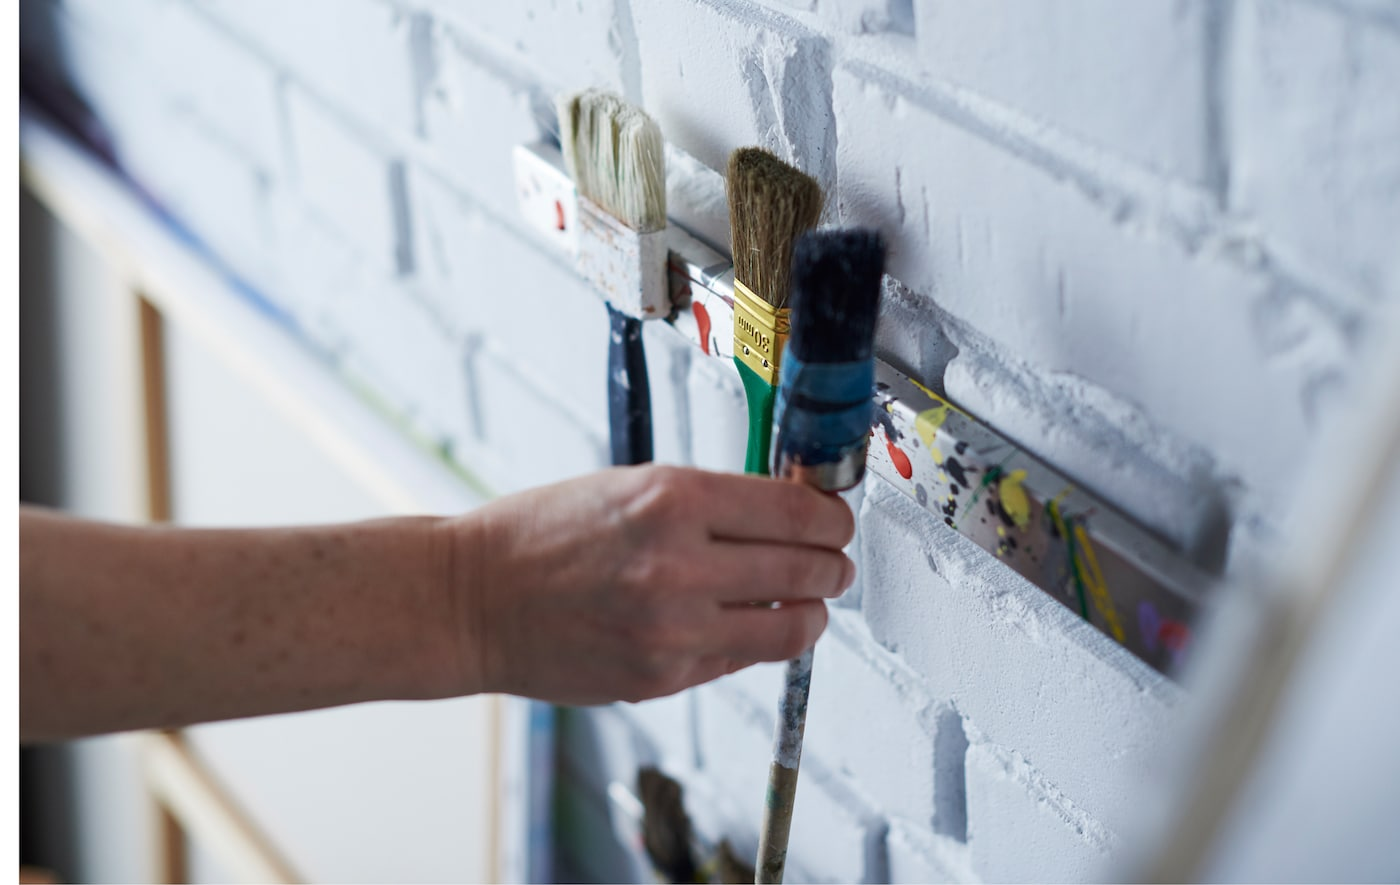 Paintbrushes are being mounted to a magnetic knife rack on the wall.